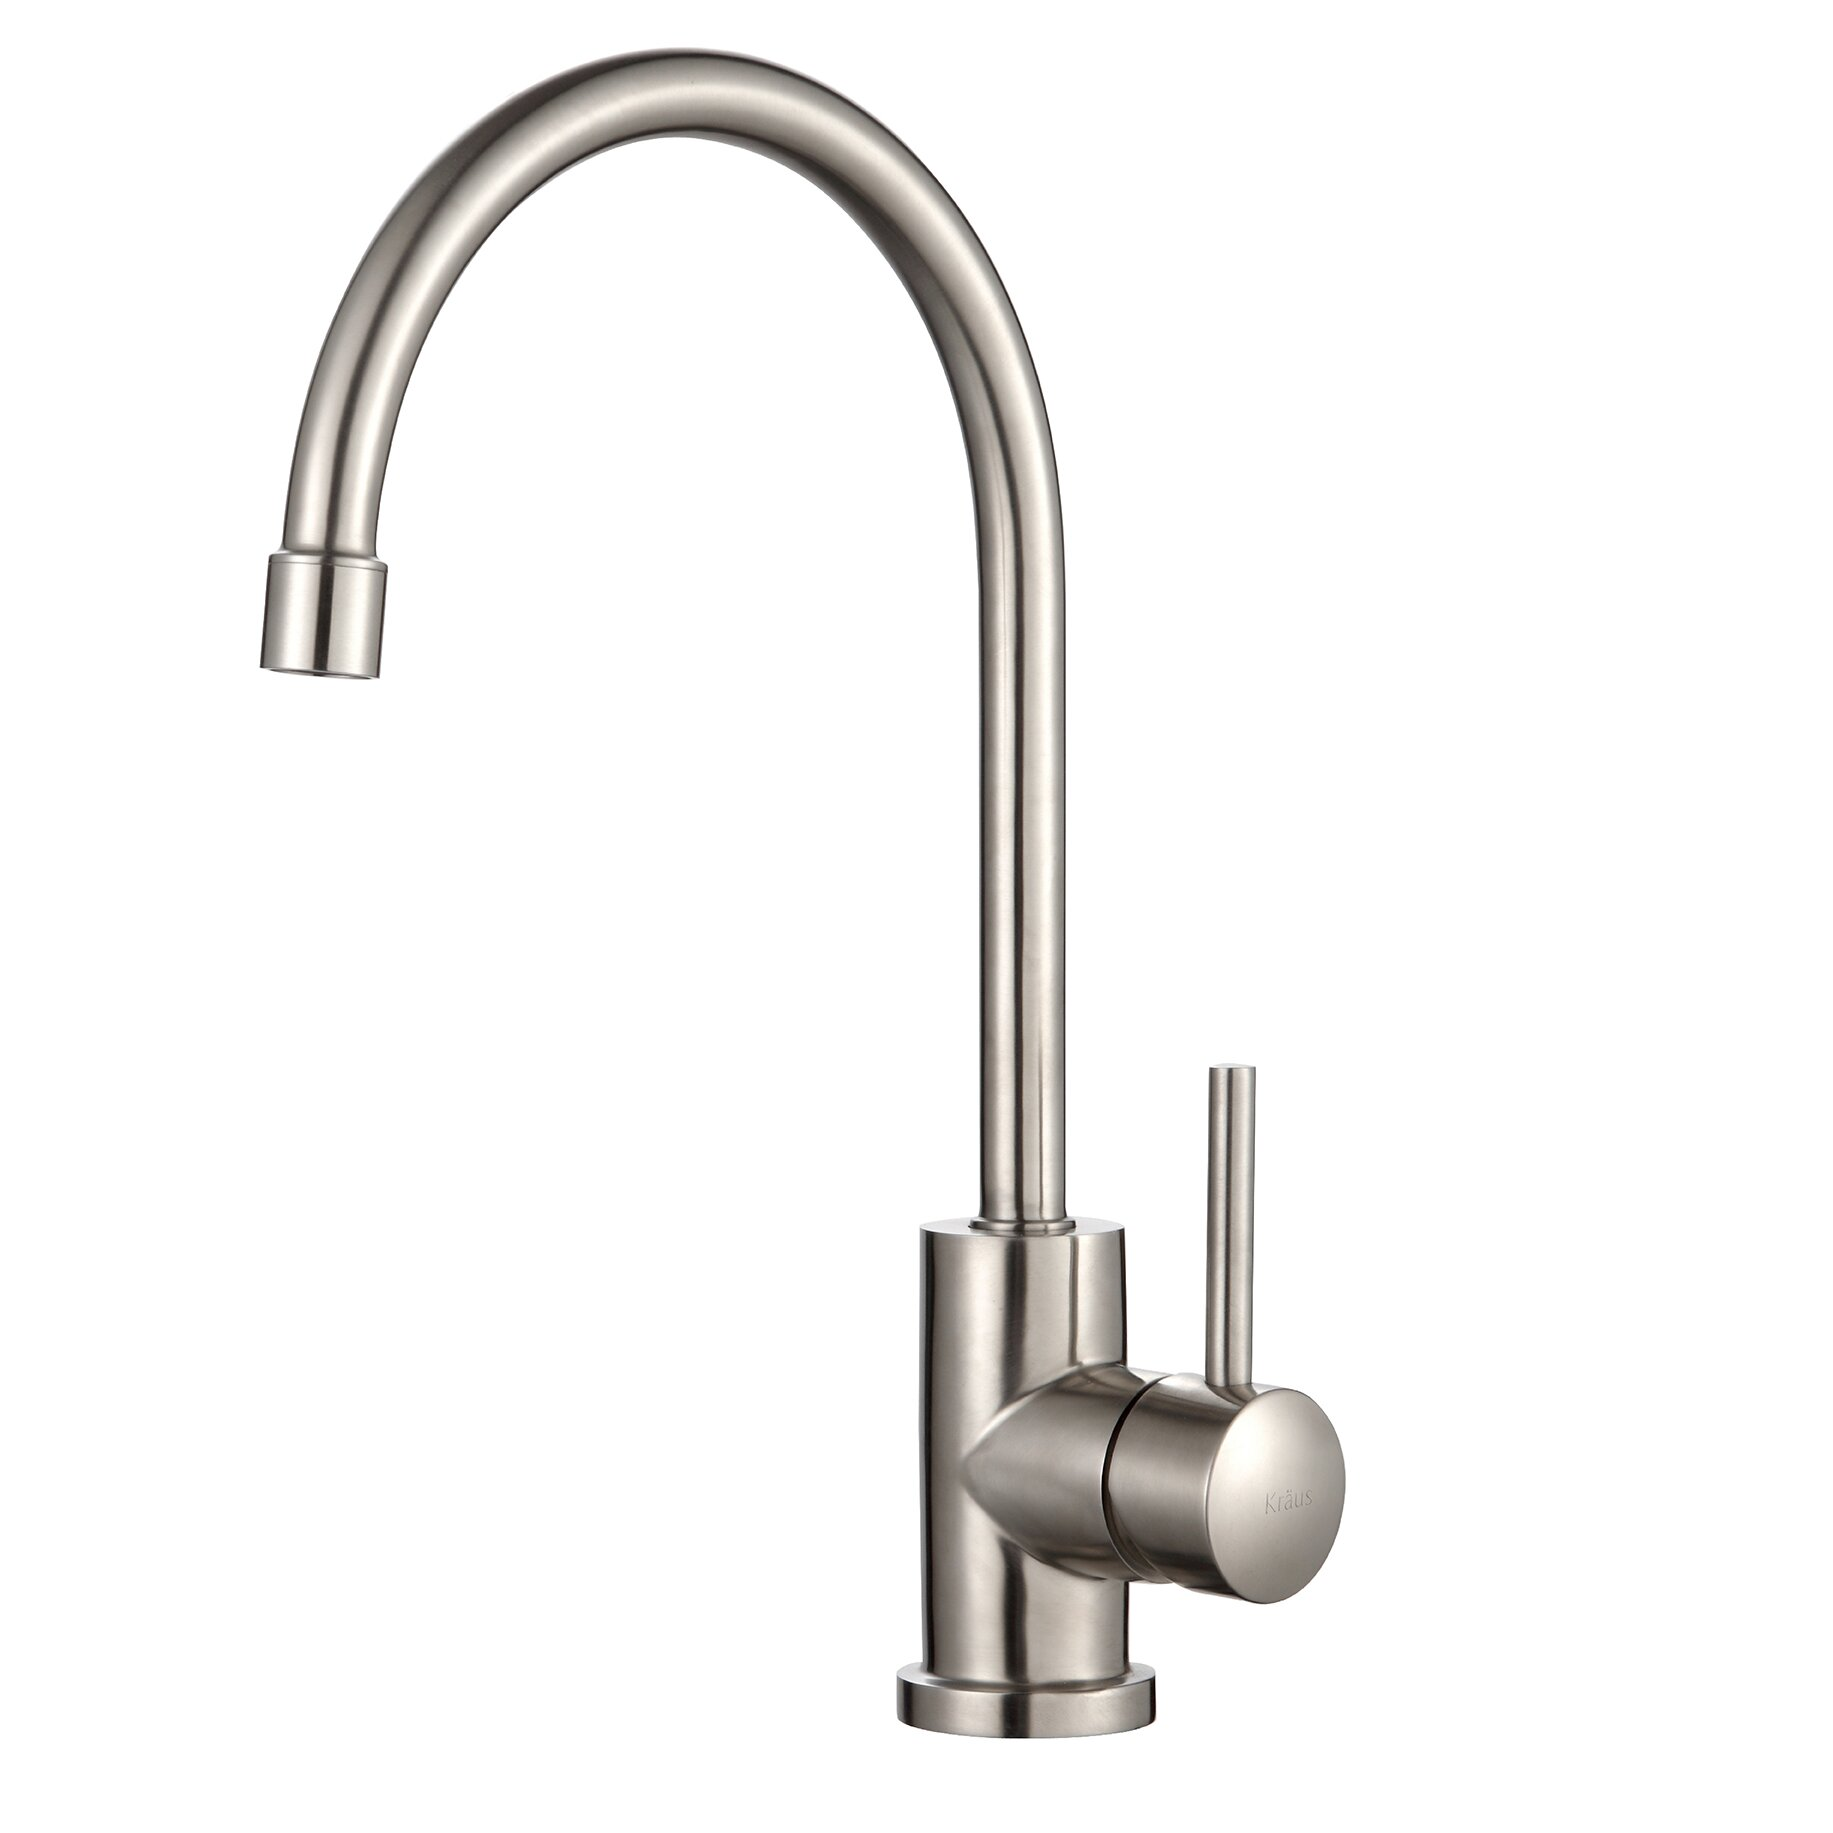 Mulder single hole kitchen faucet